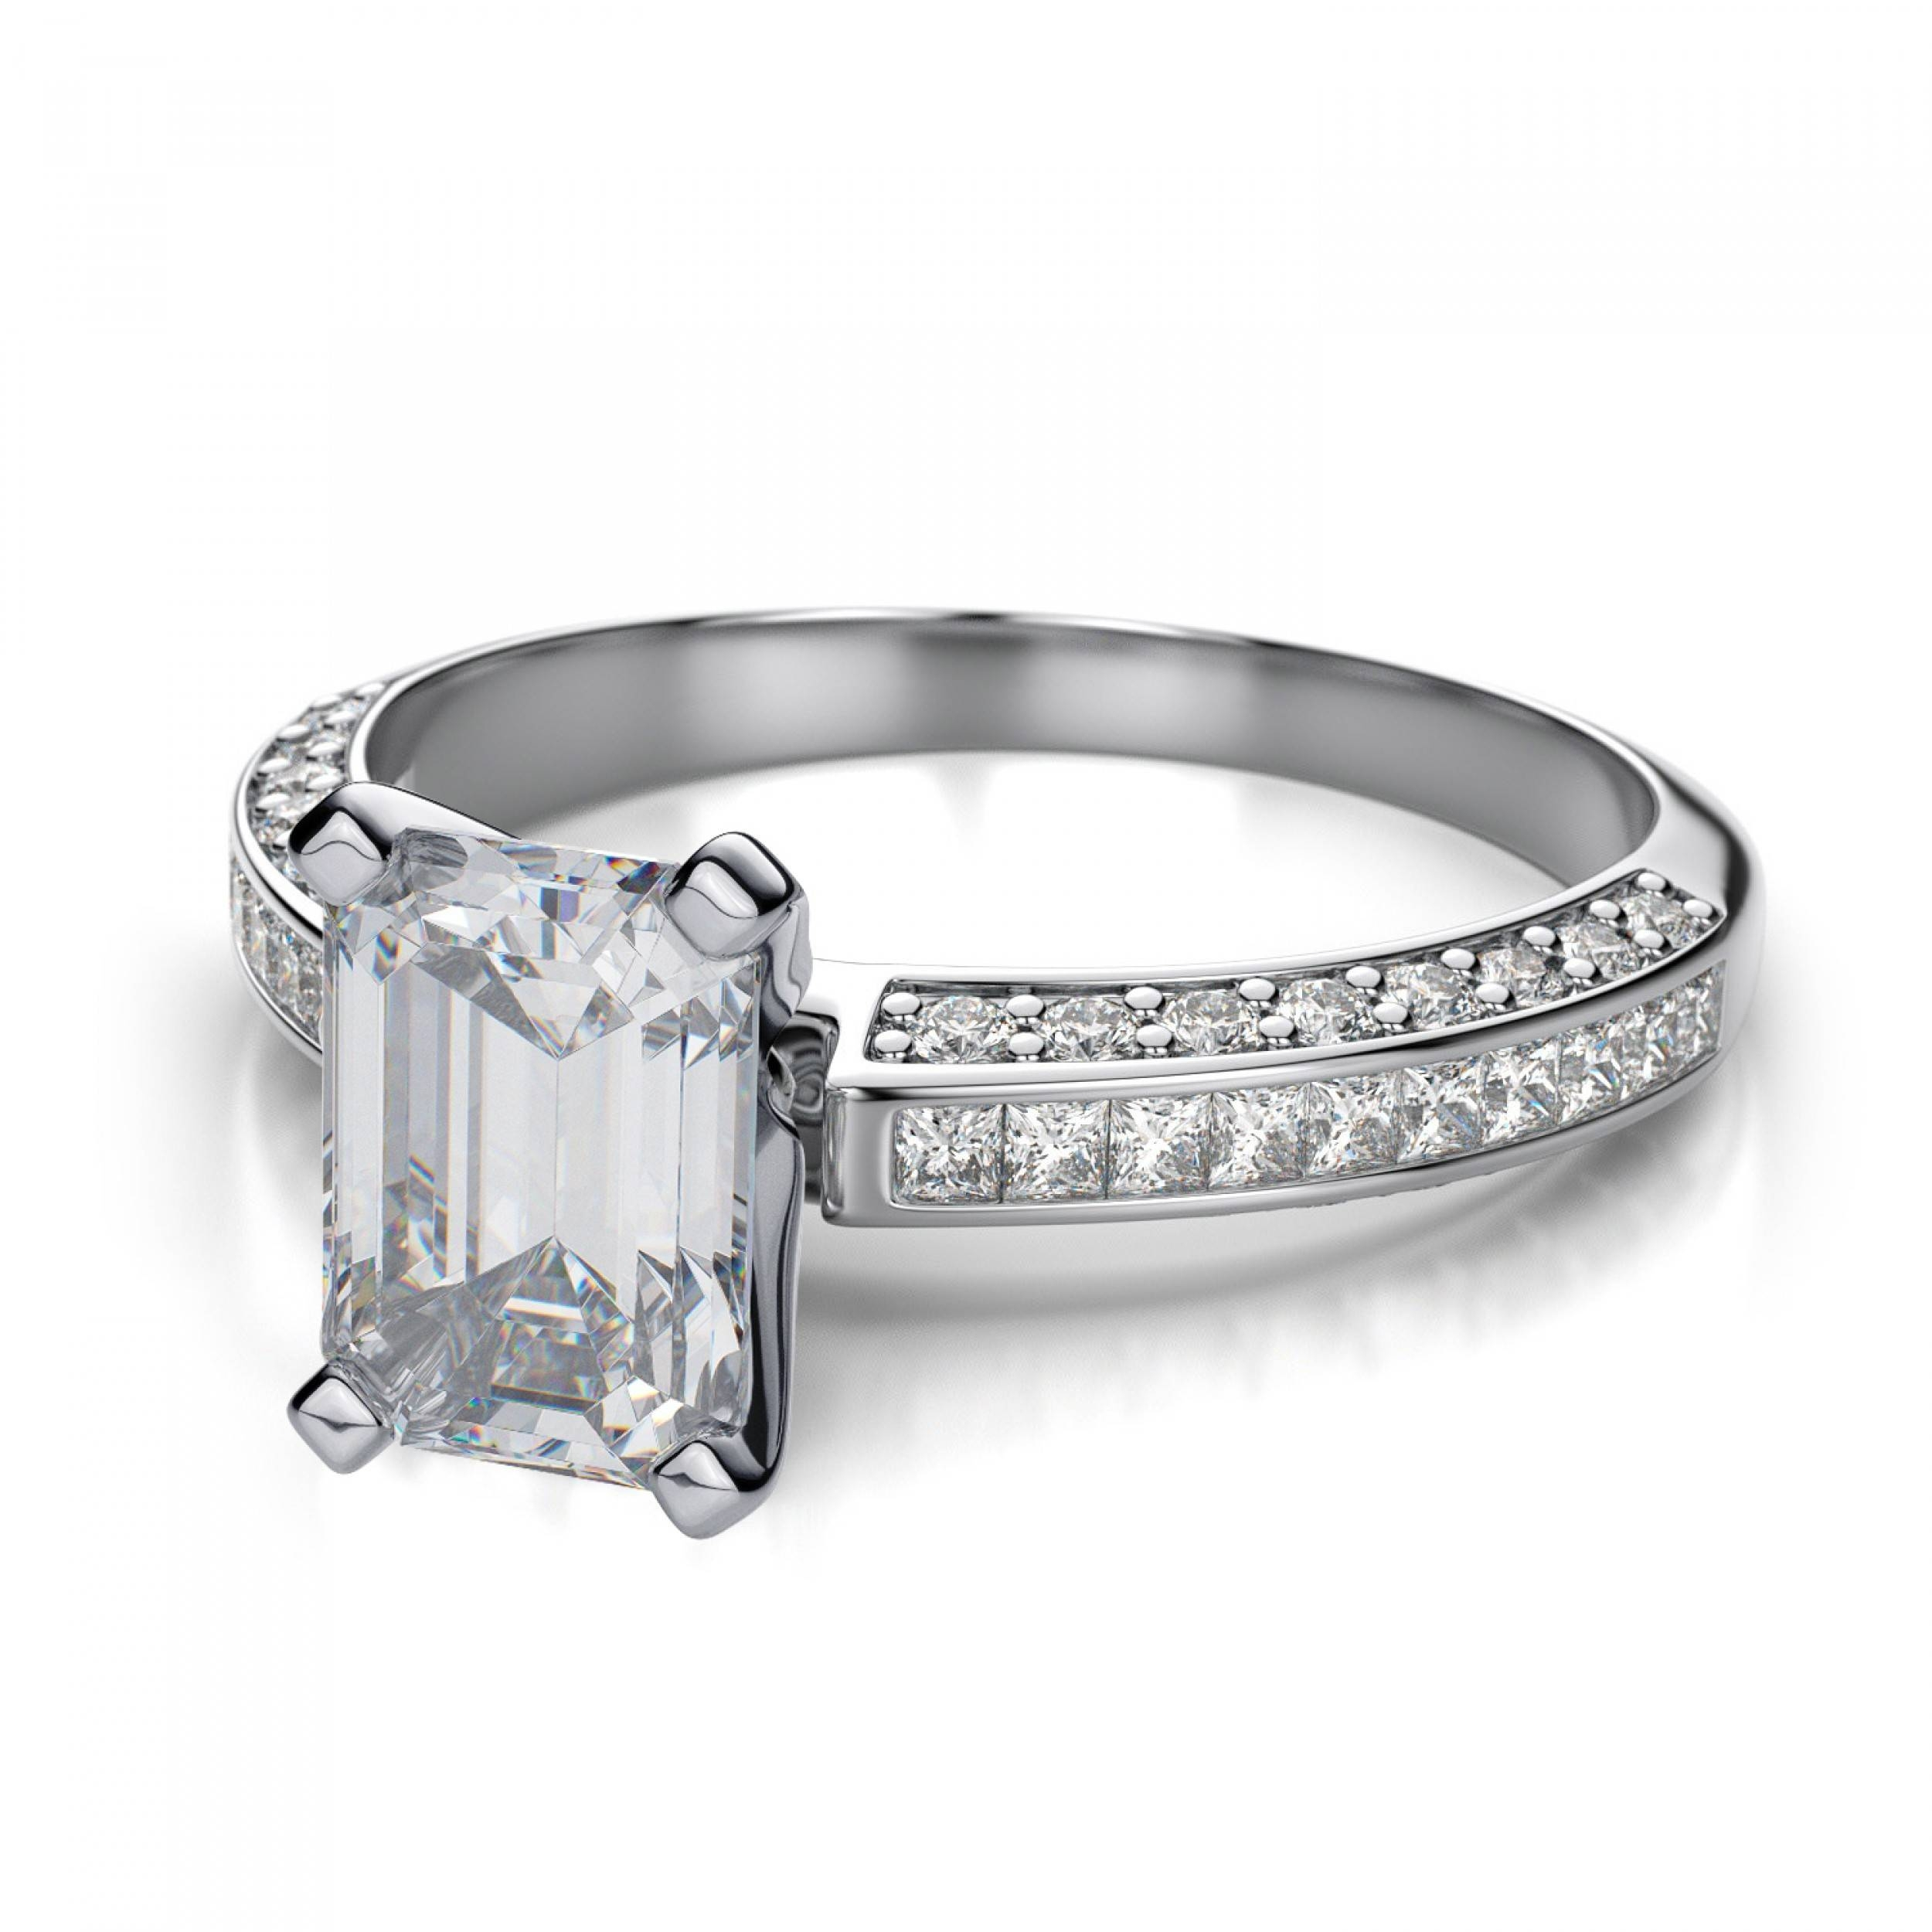 Set Princess Cut Sidestones And Emerald Cut Engagement Ring Mount Inside White Emerald Engagement Rings (View 15 of 15)